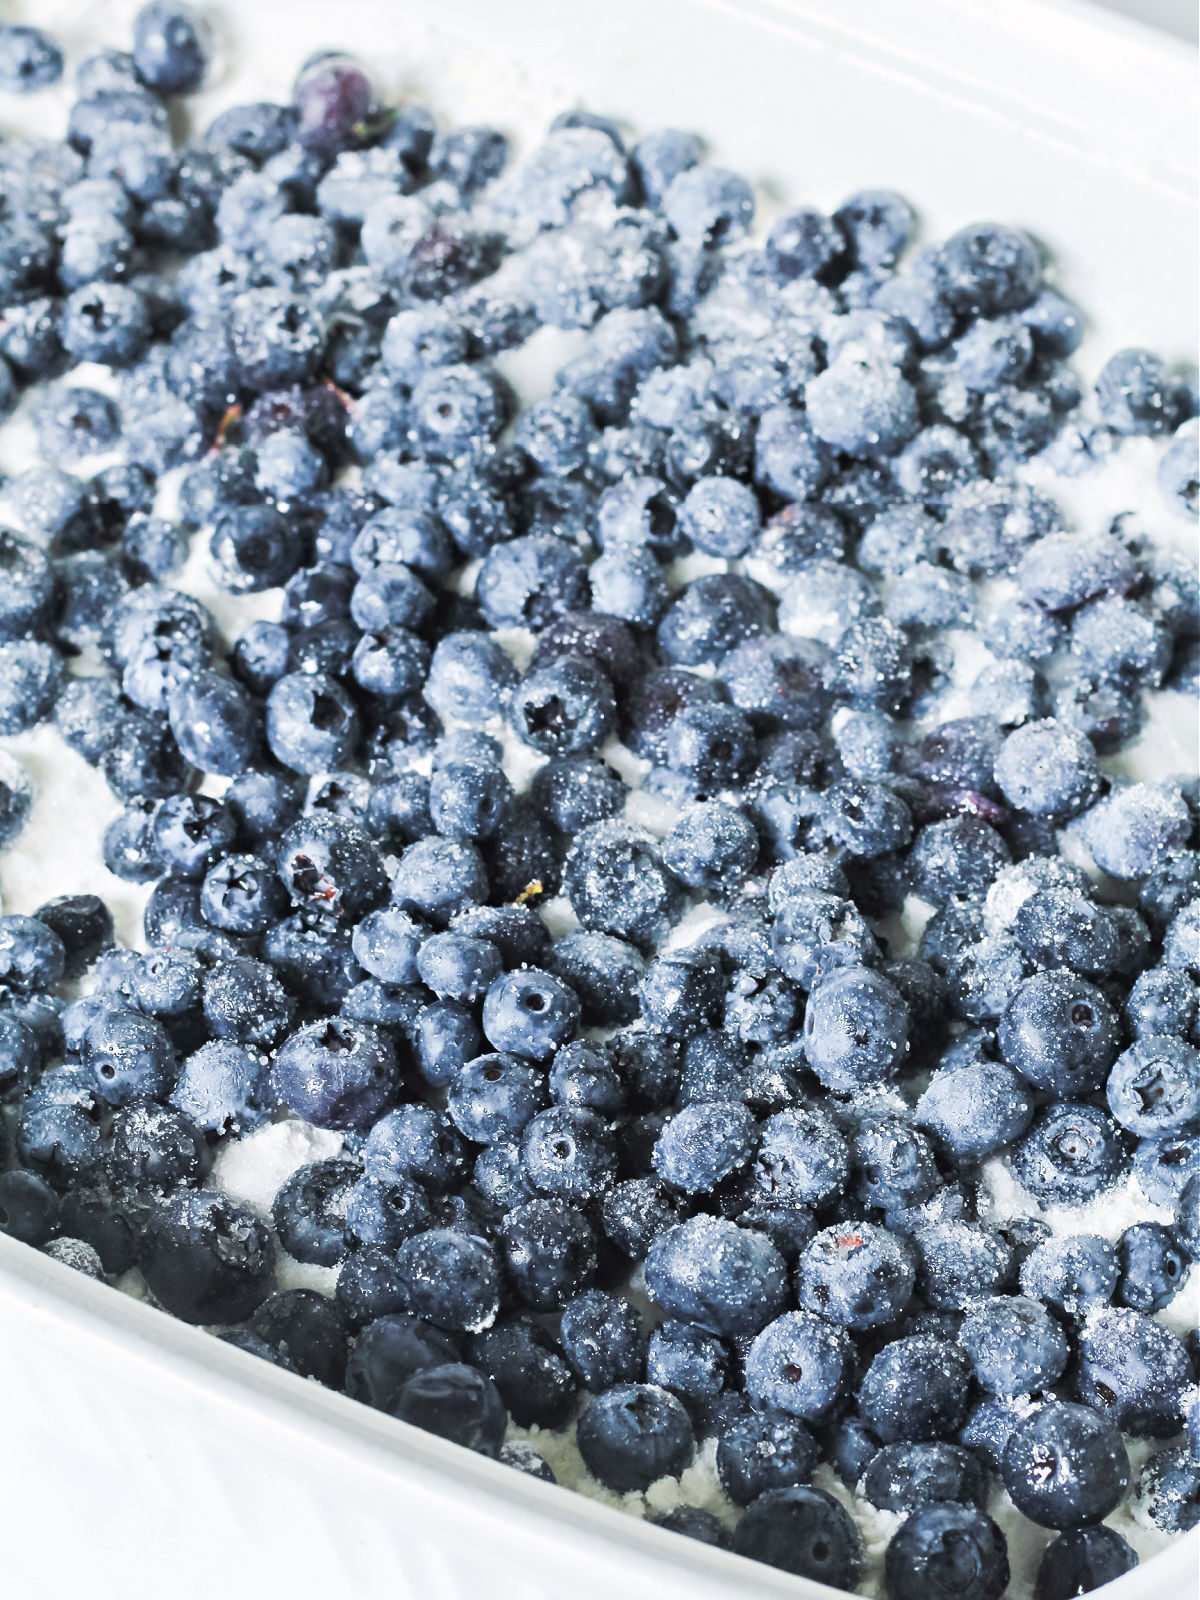 Blueberries topped with sugar in a baking dish.